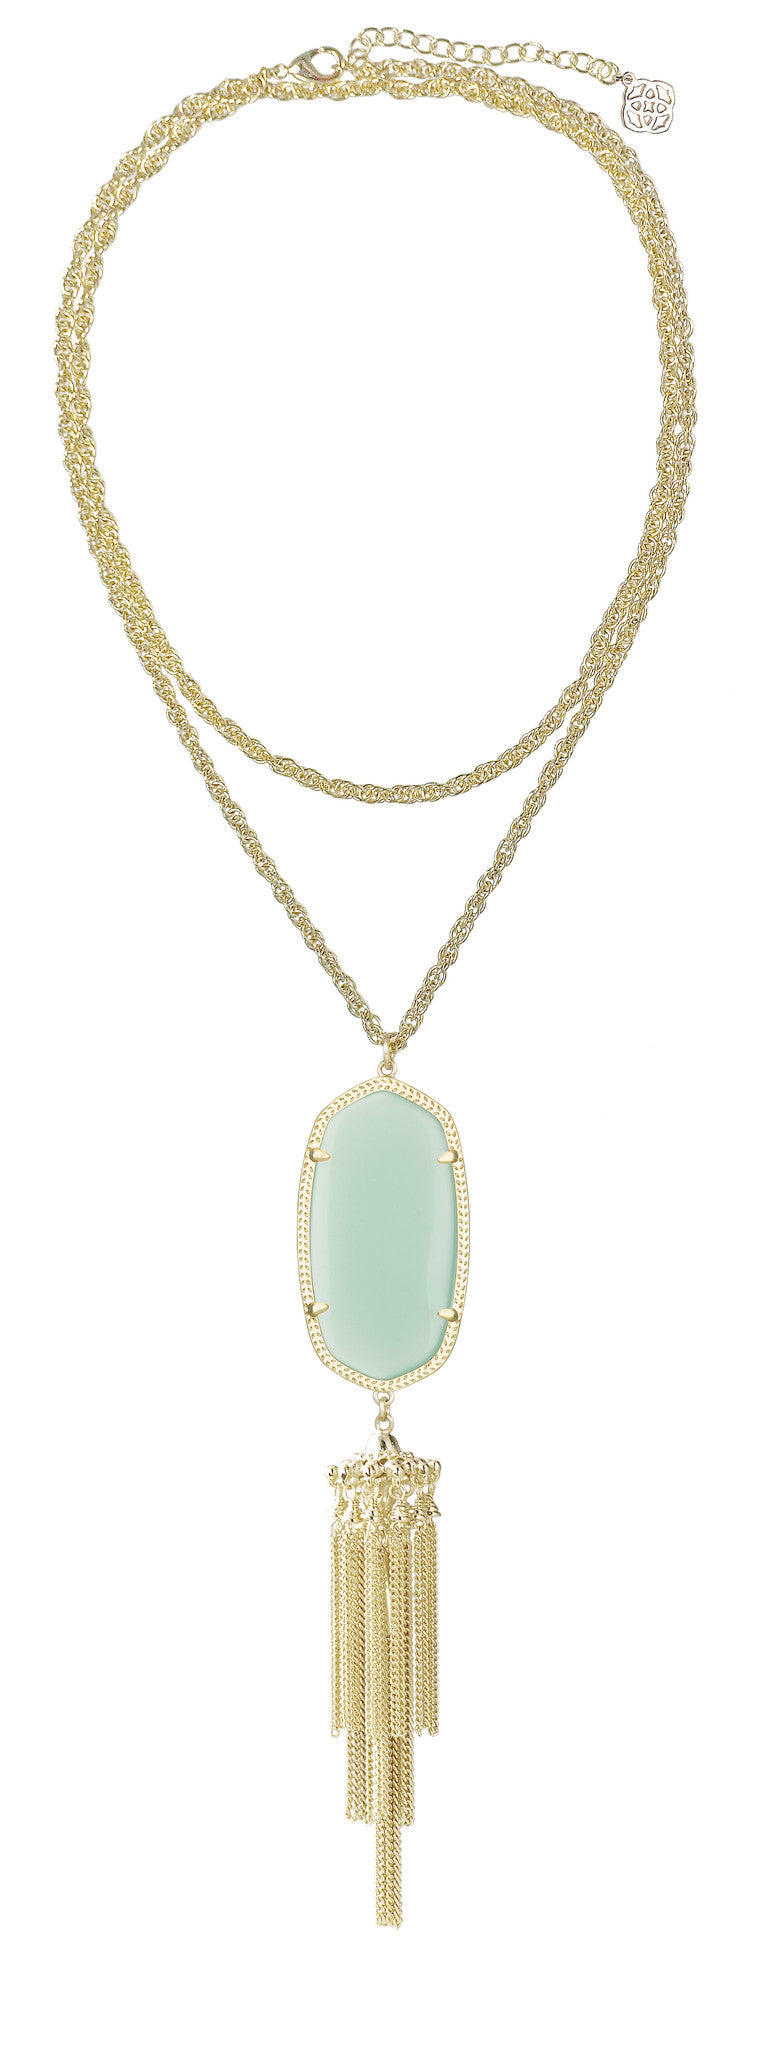 KENDRA SCOTT Rayne Gold Necklace Chalcedony